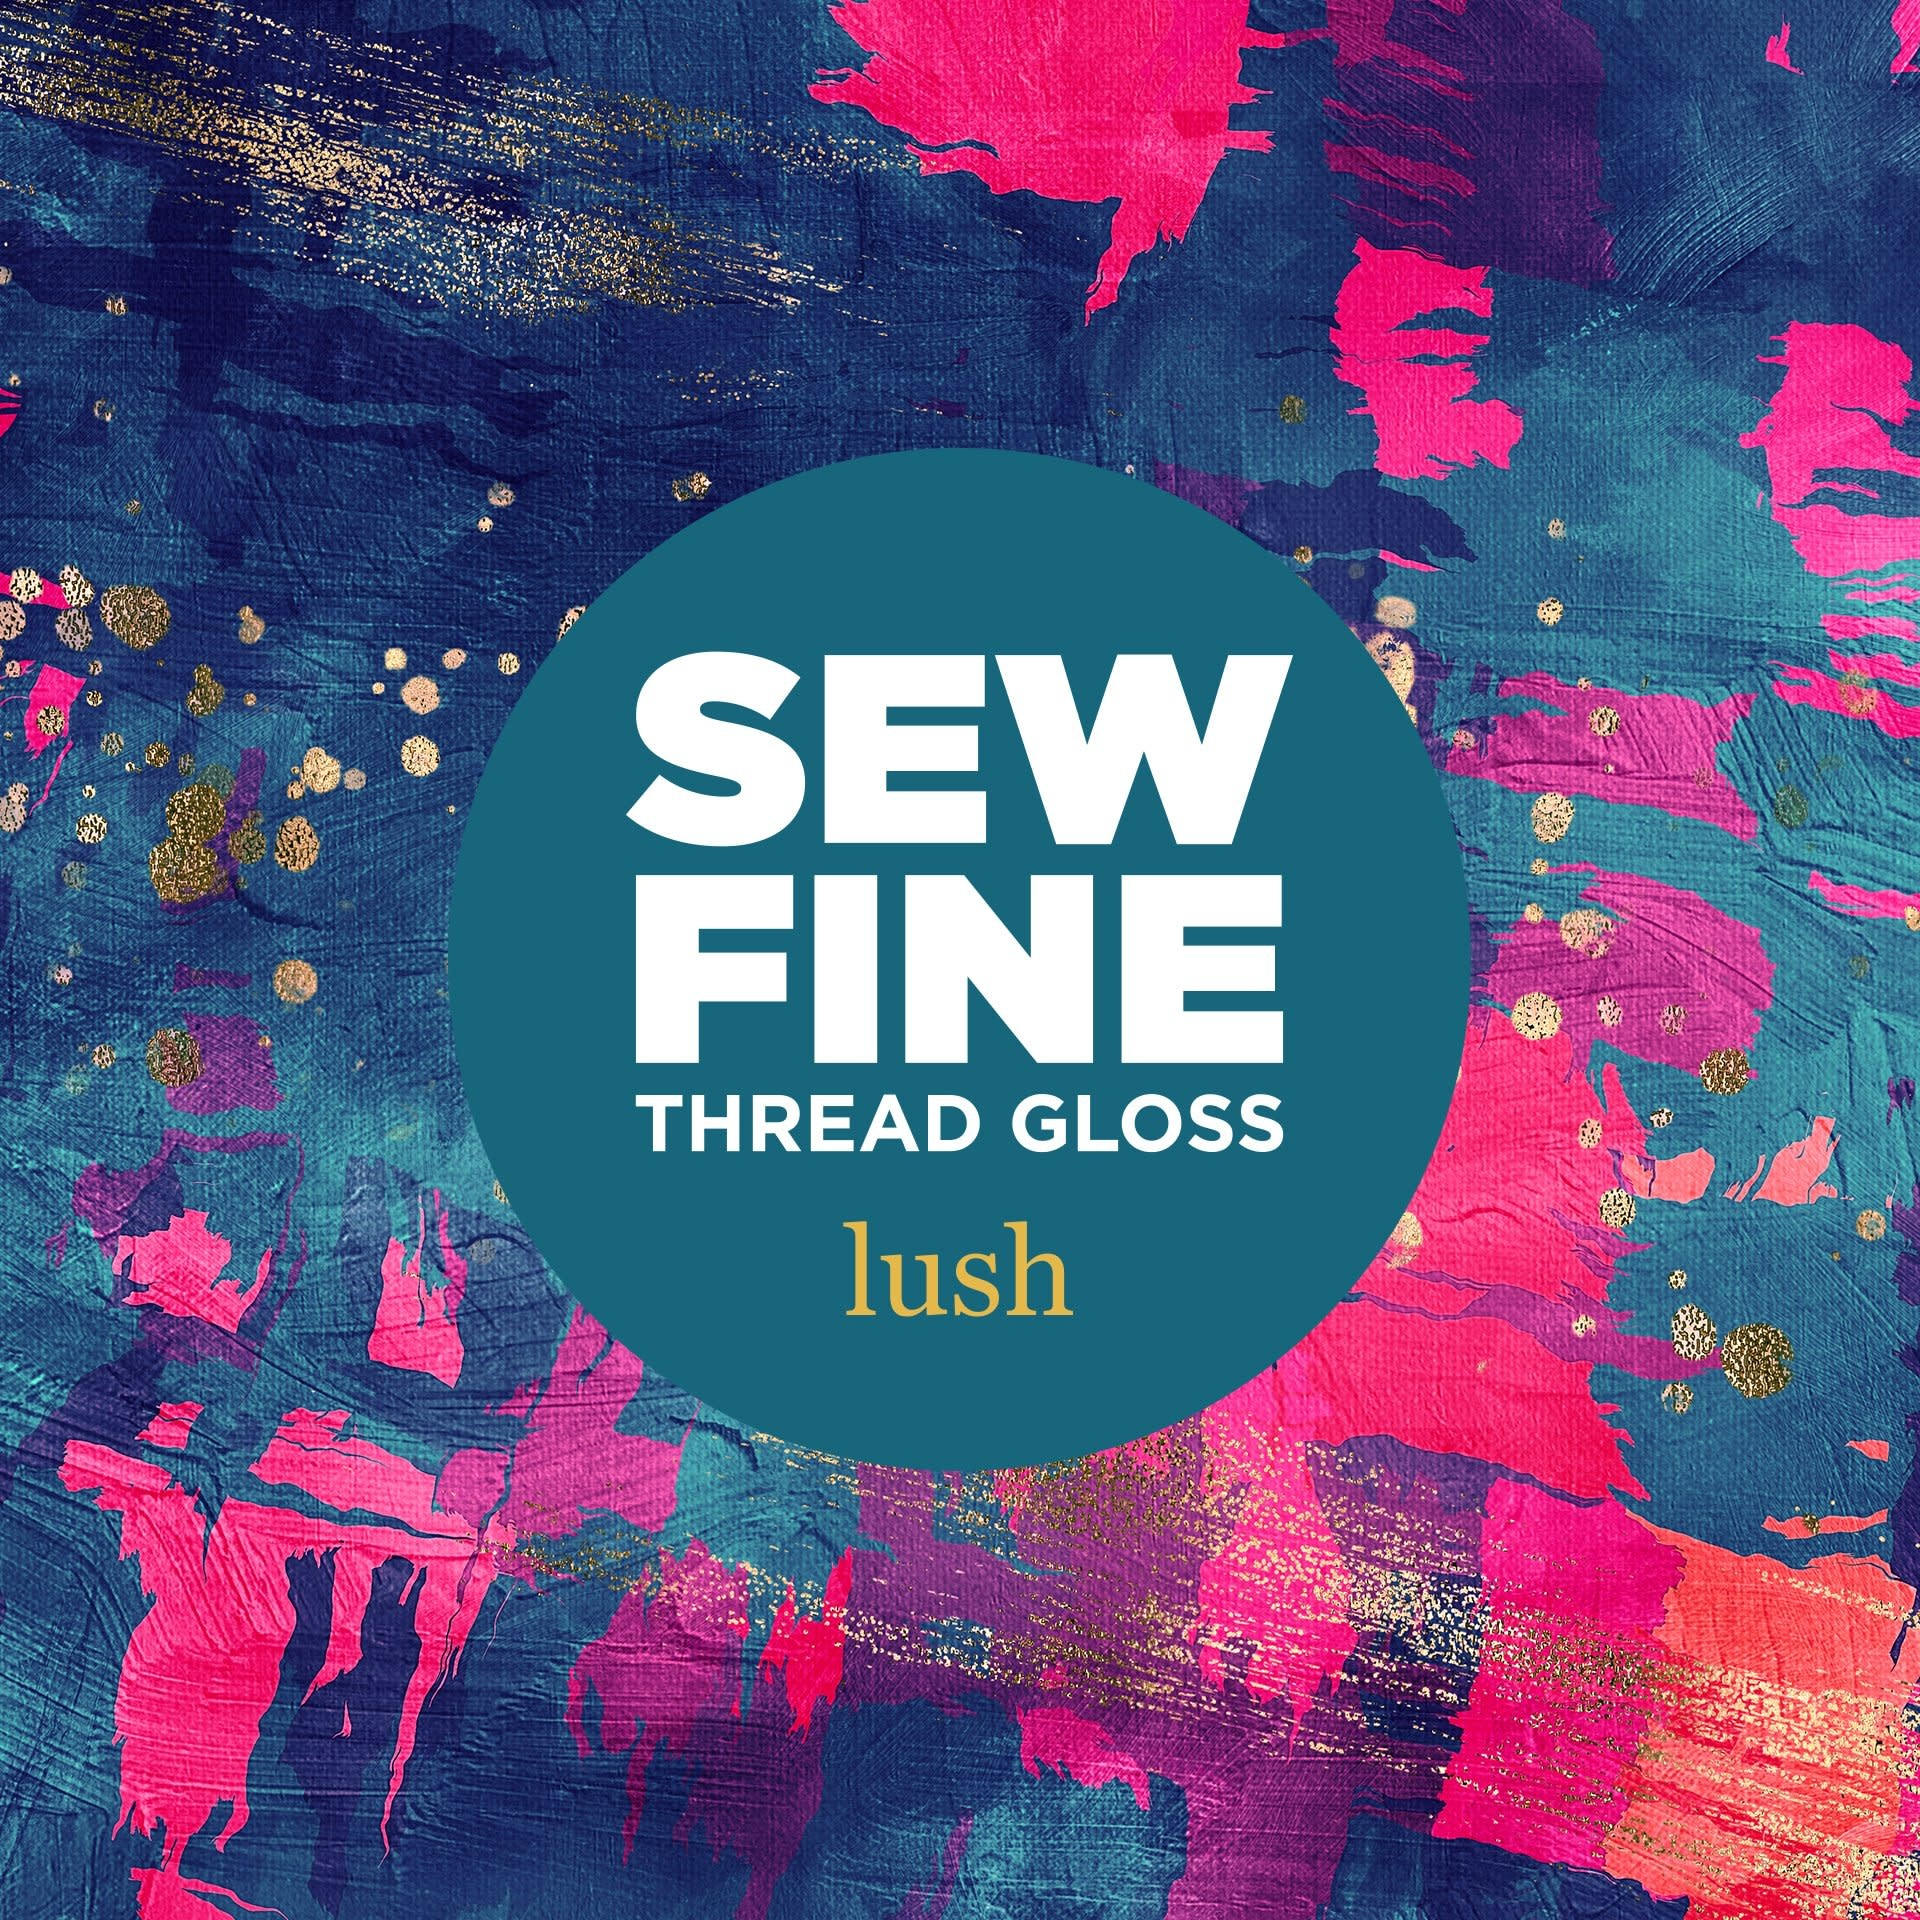 Sew Fine Sew Fine Thread Gloss: Lush 0.5 oz